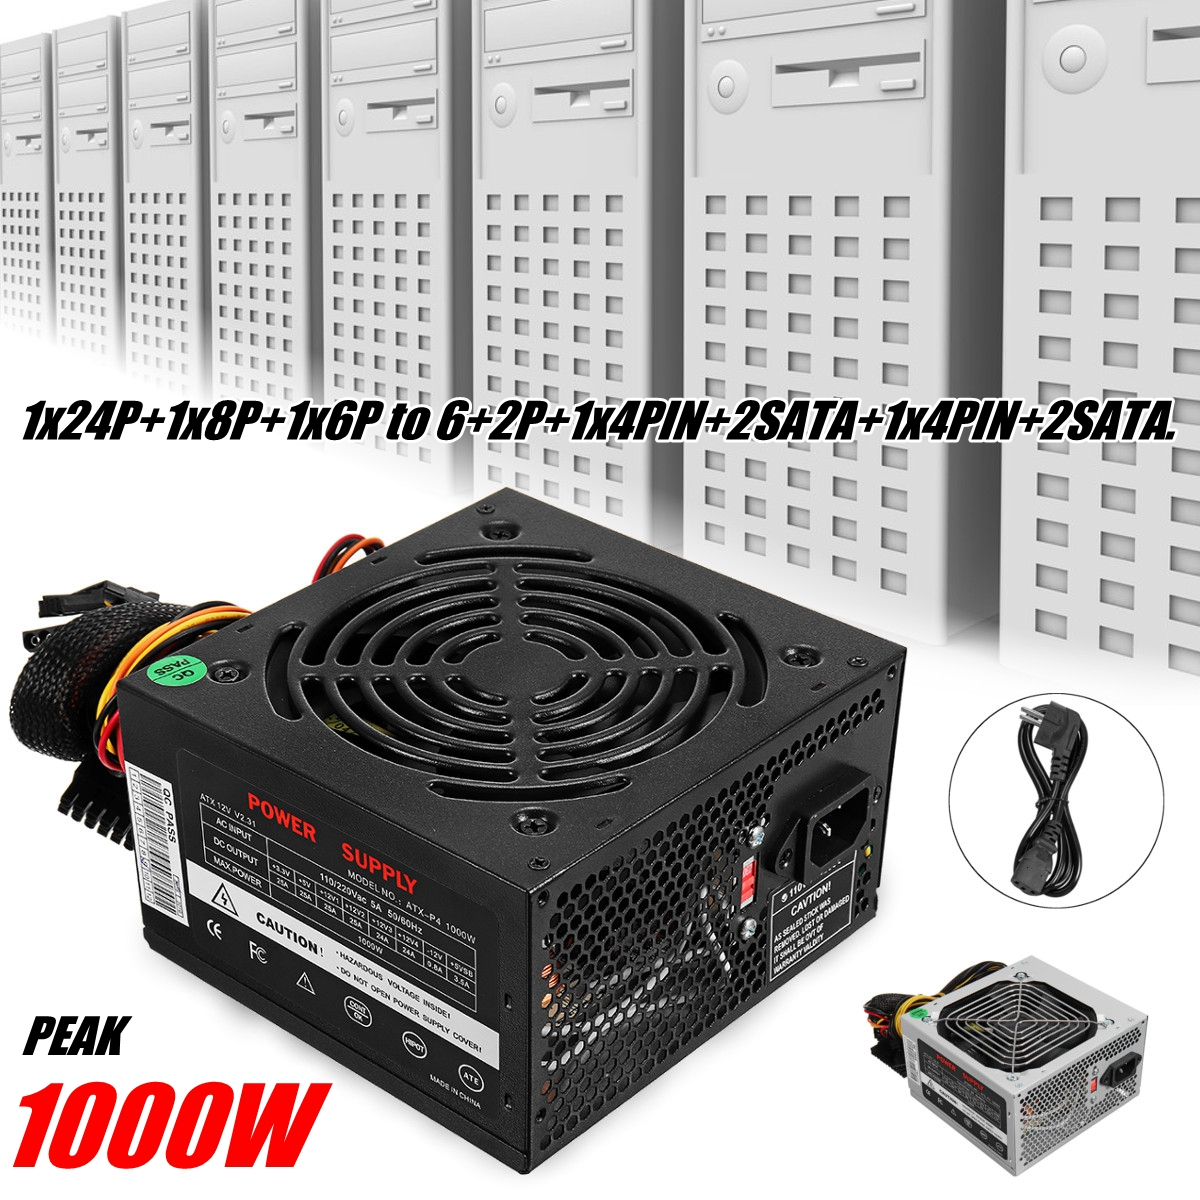 цена на Max 1000W Power Supply PSU PFC Silent Fan ATX 24pin 12V PC Computer SATA Gaming PC Power Supply For Intel AMD Computer